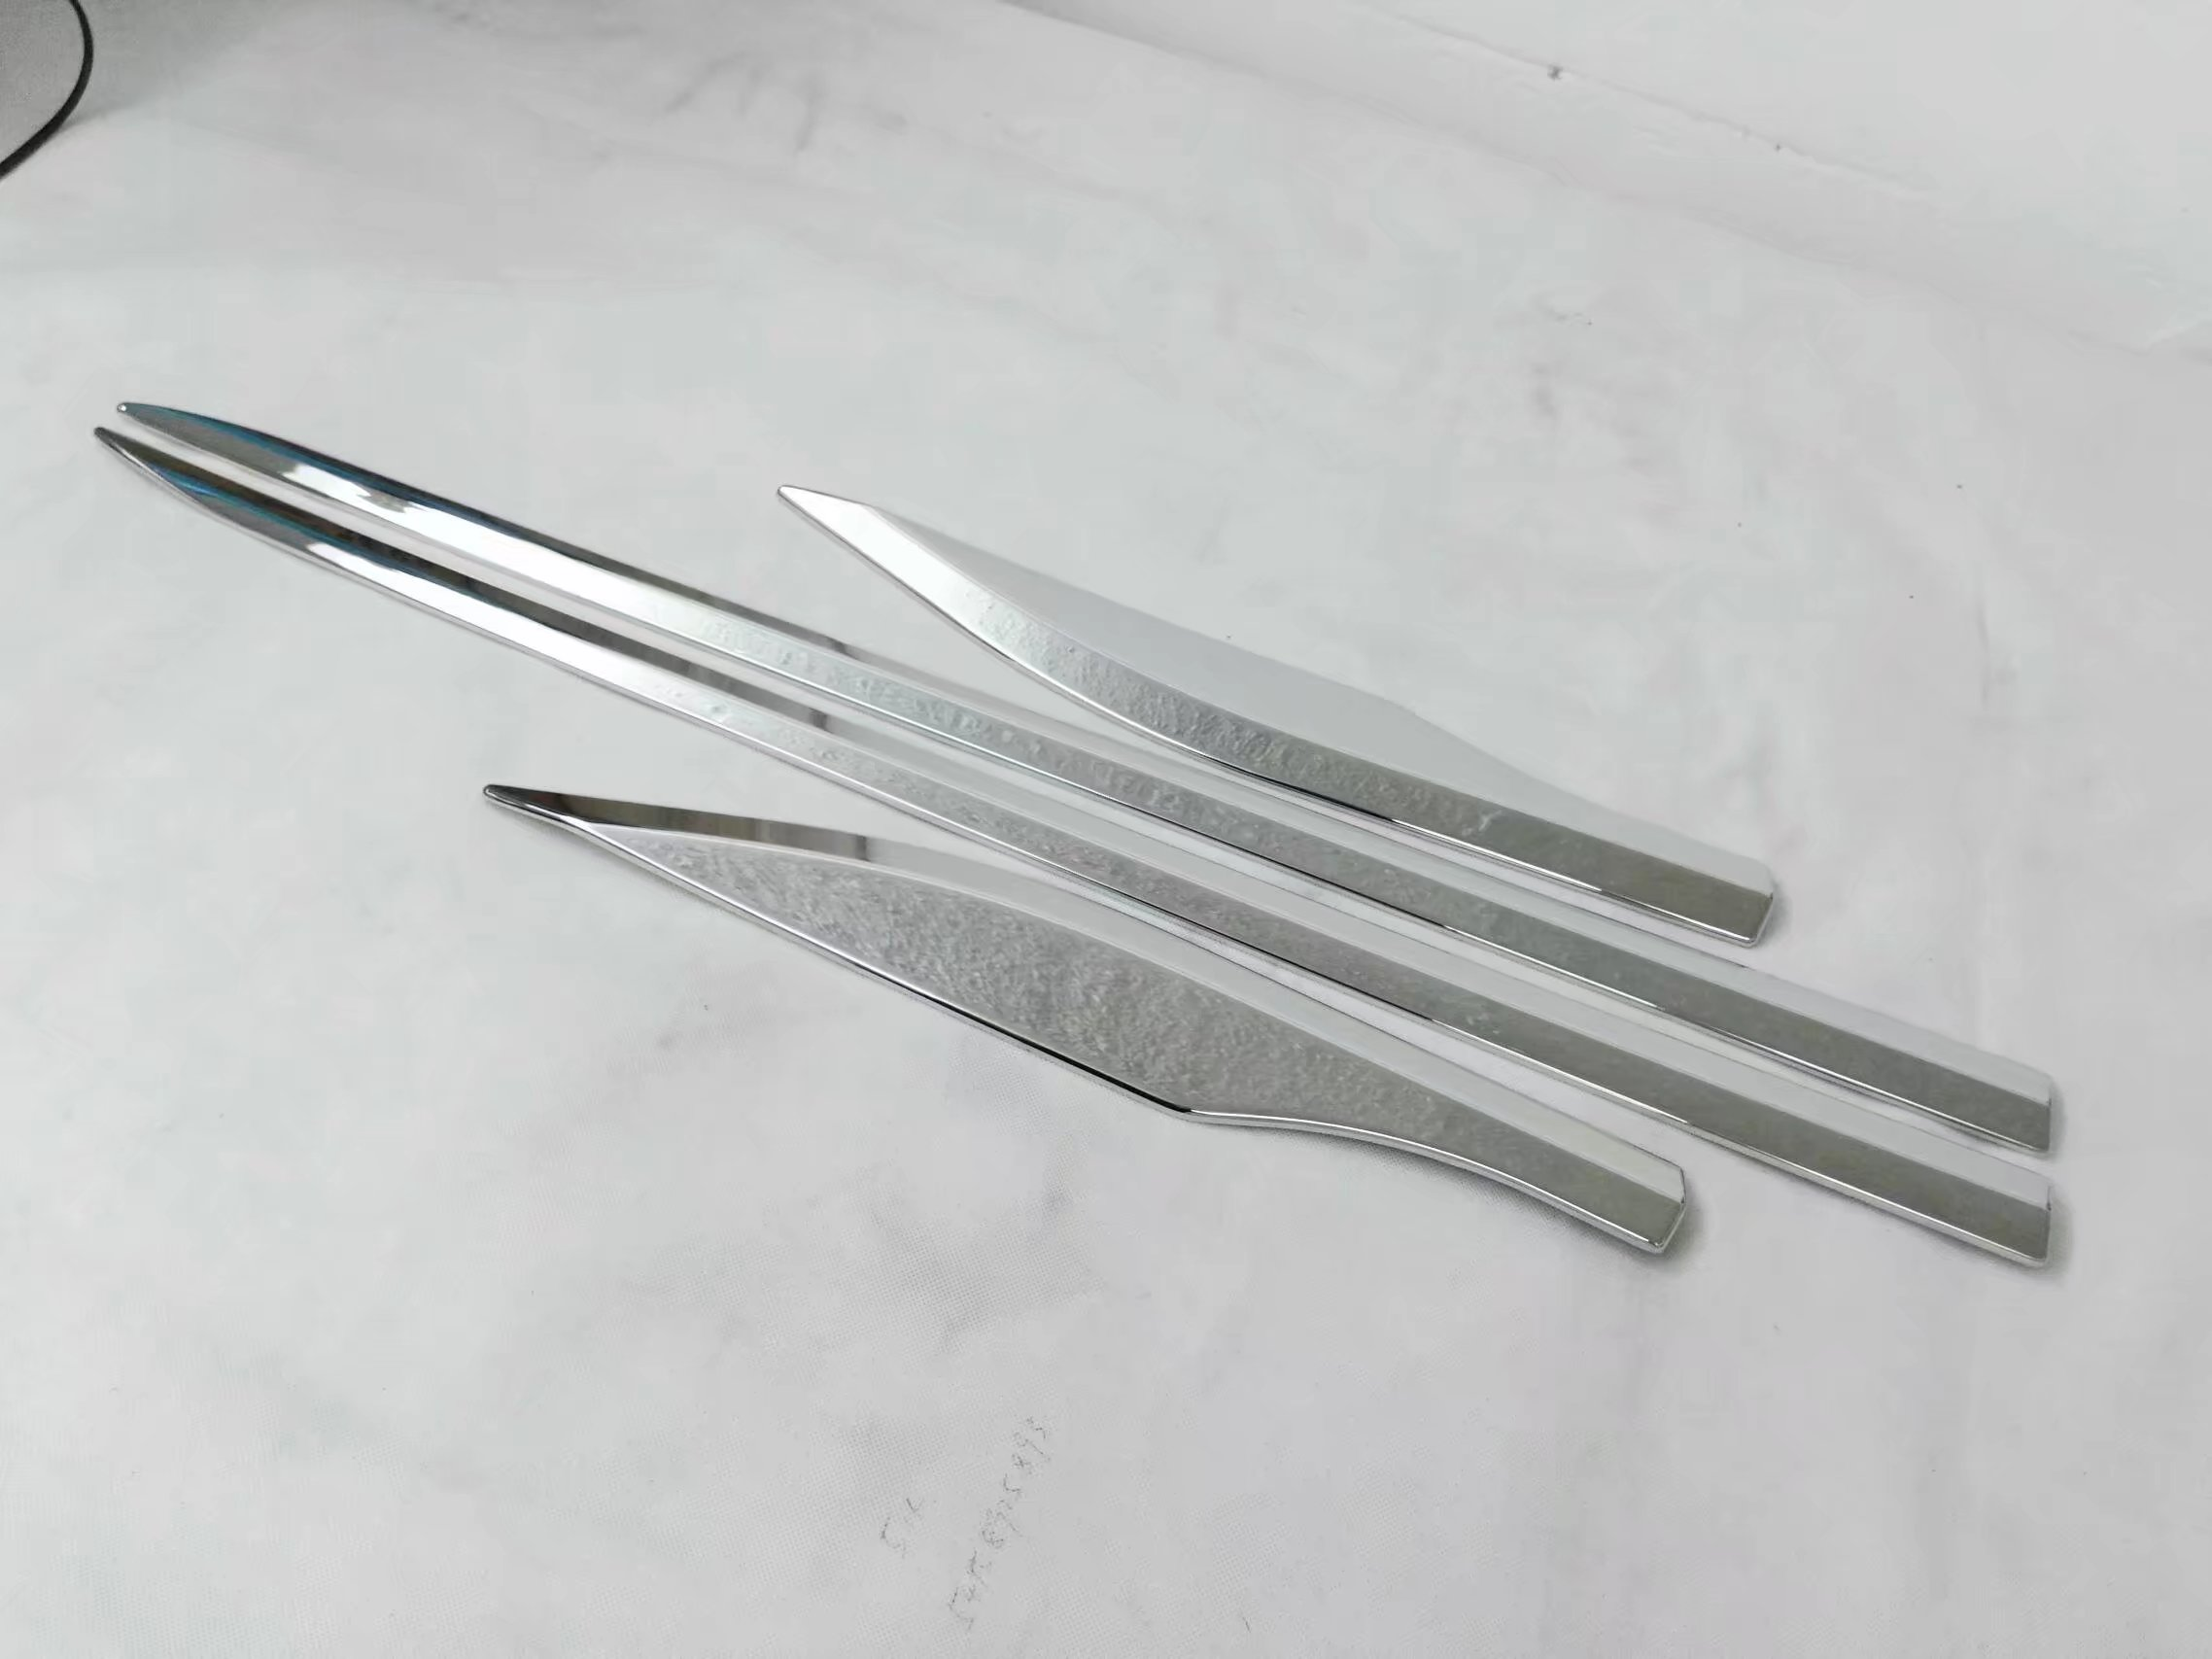 New! For Toyota C -HR CHR 2016 2017 ABS Chrome Side Door Body trim molding protector decoration trim